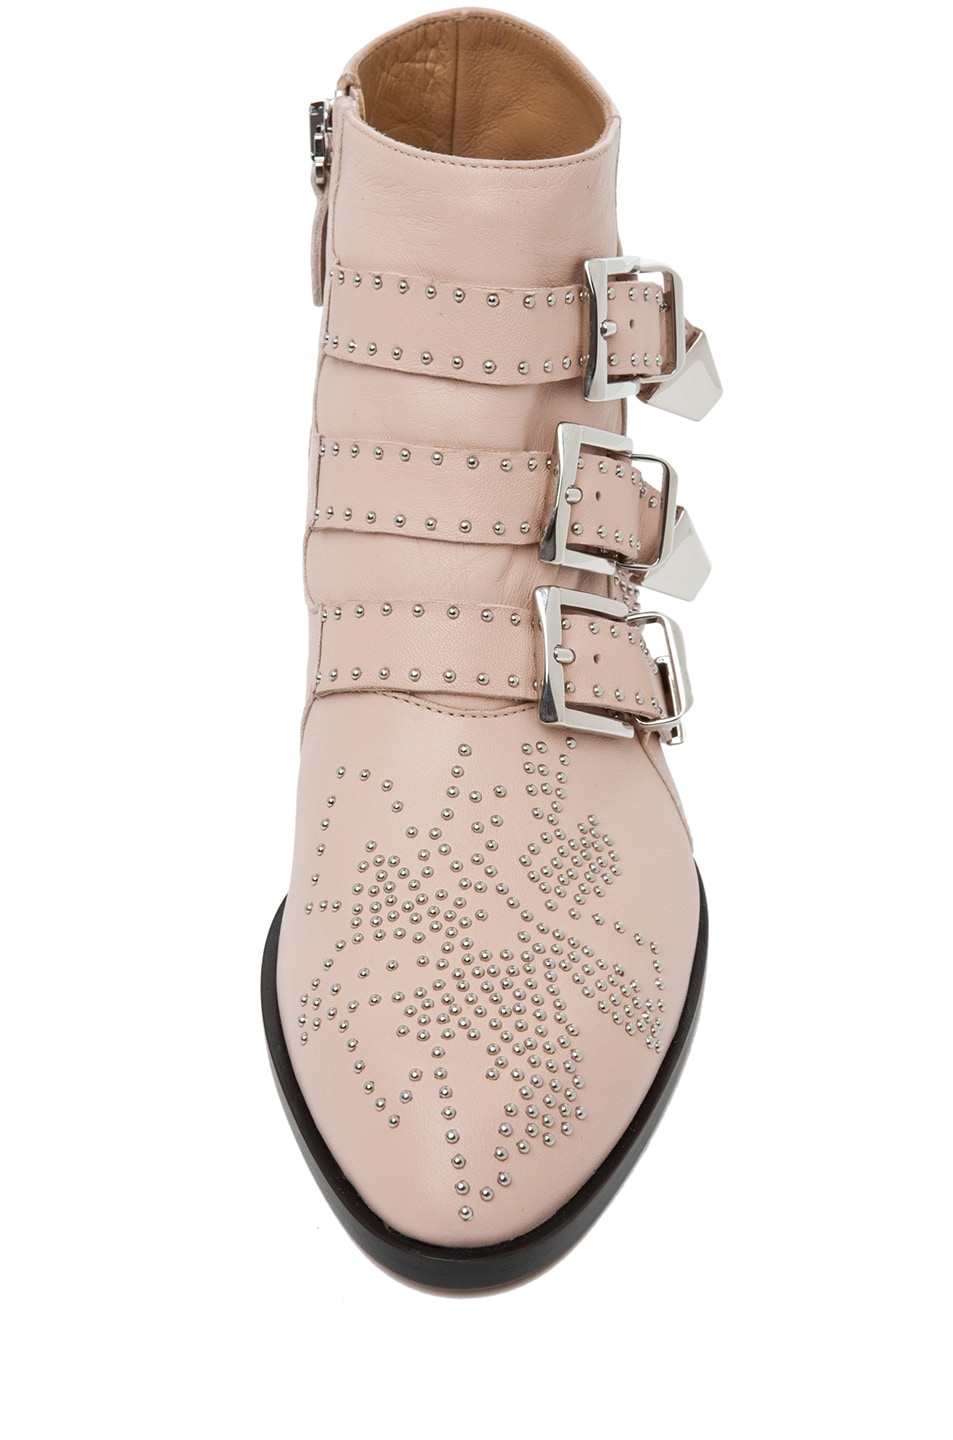 Image 4 of Chloe Susanna Leather Studded Bootie in Nude Pink